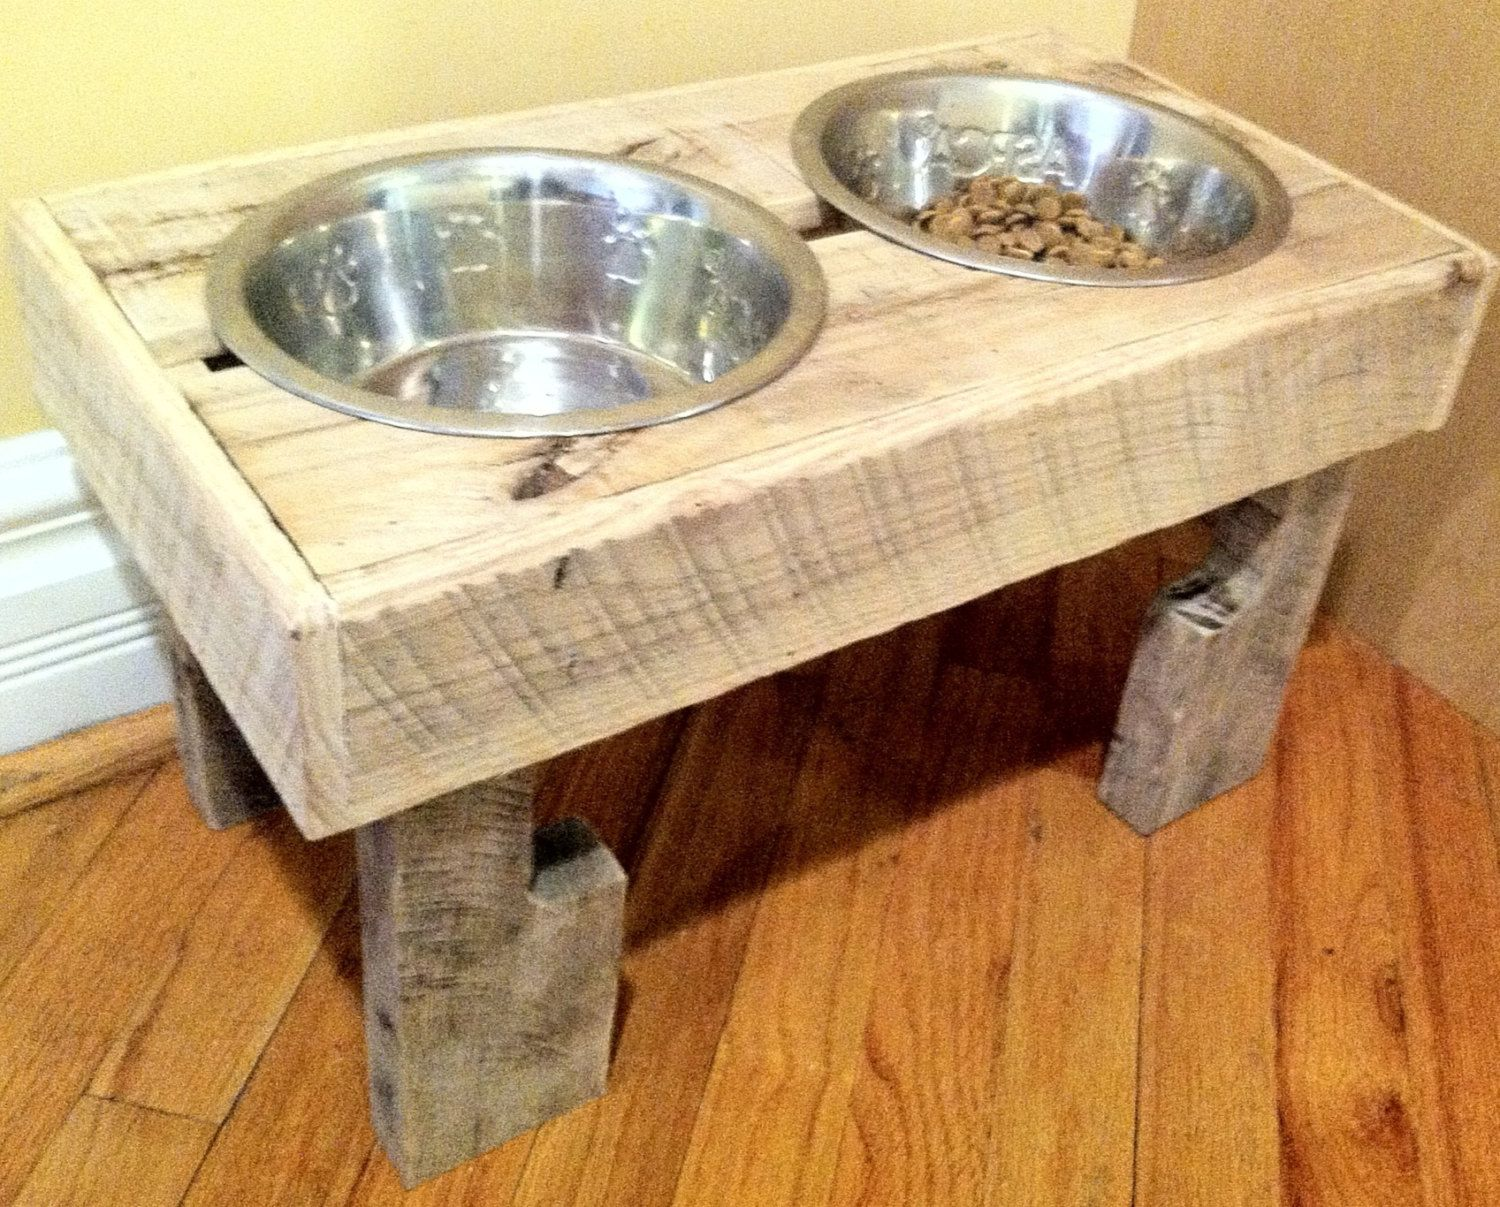 Reclaimed Rustic Pallet Furniture Dog Bowl Stand Pet By Kustomwood, $4999